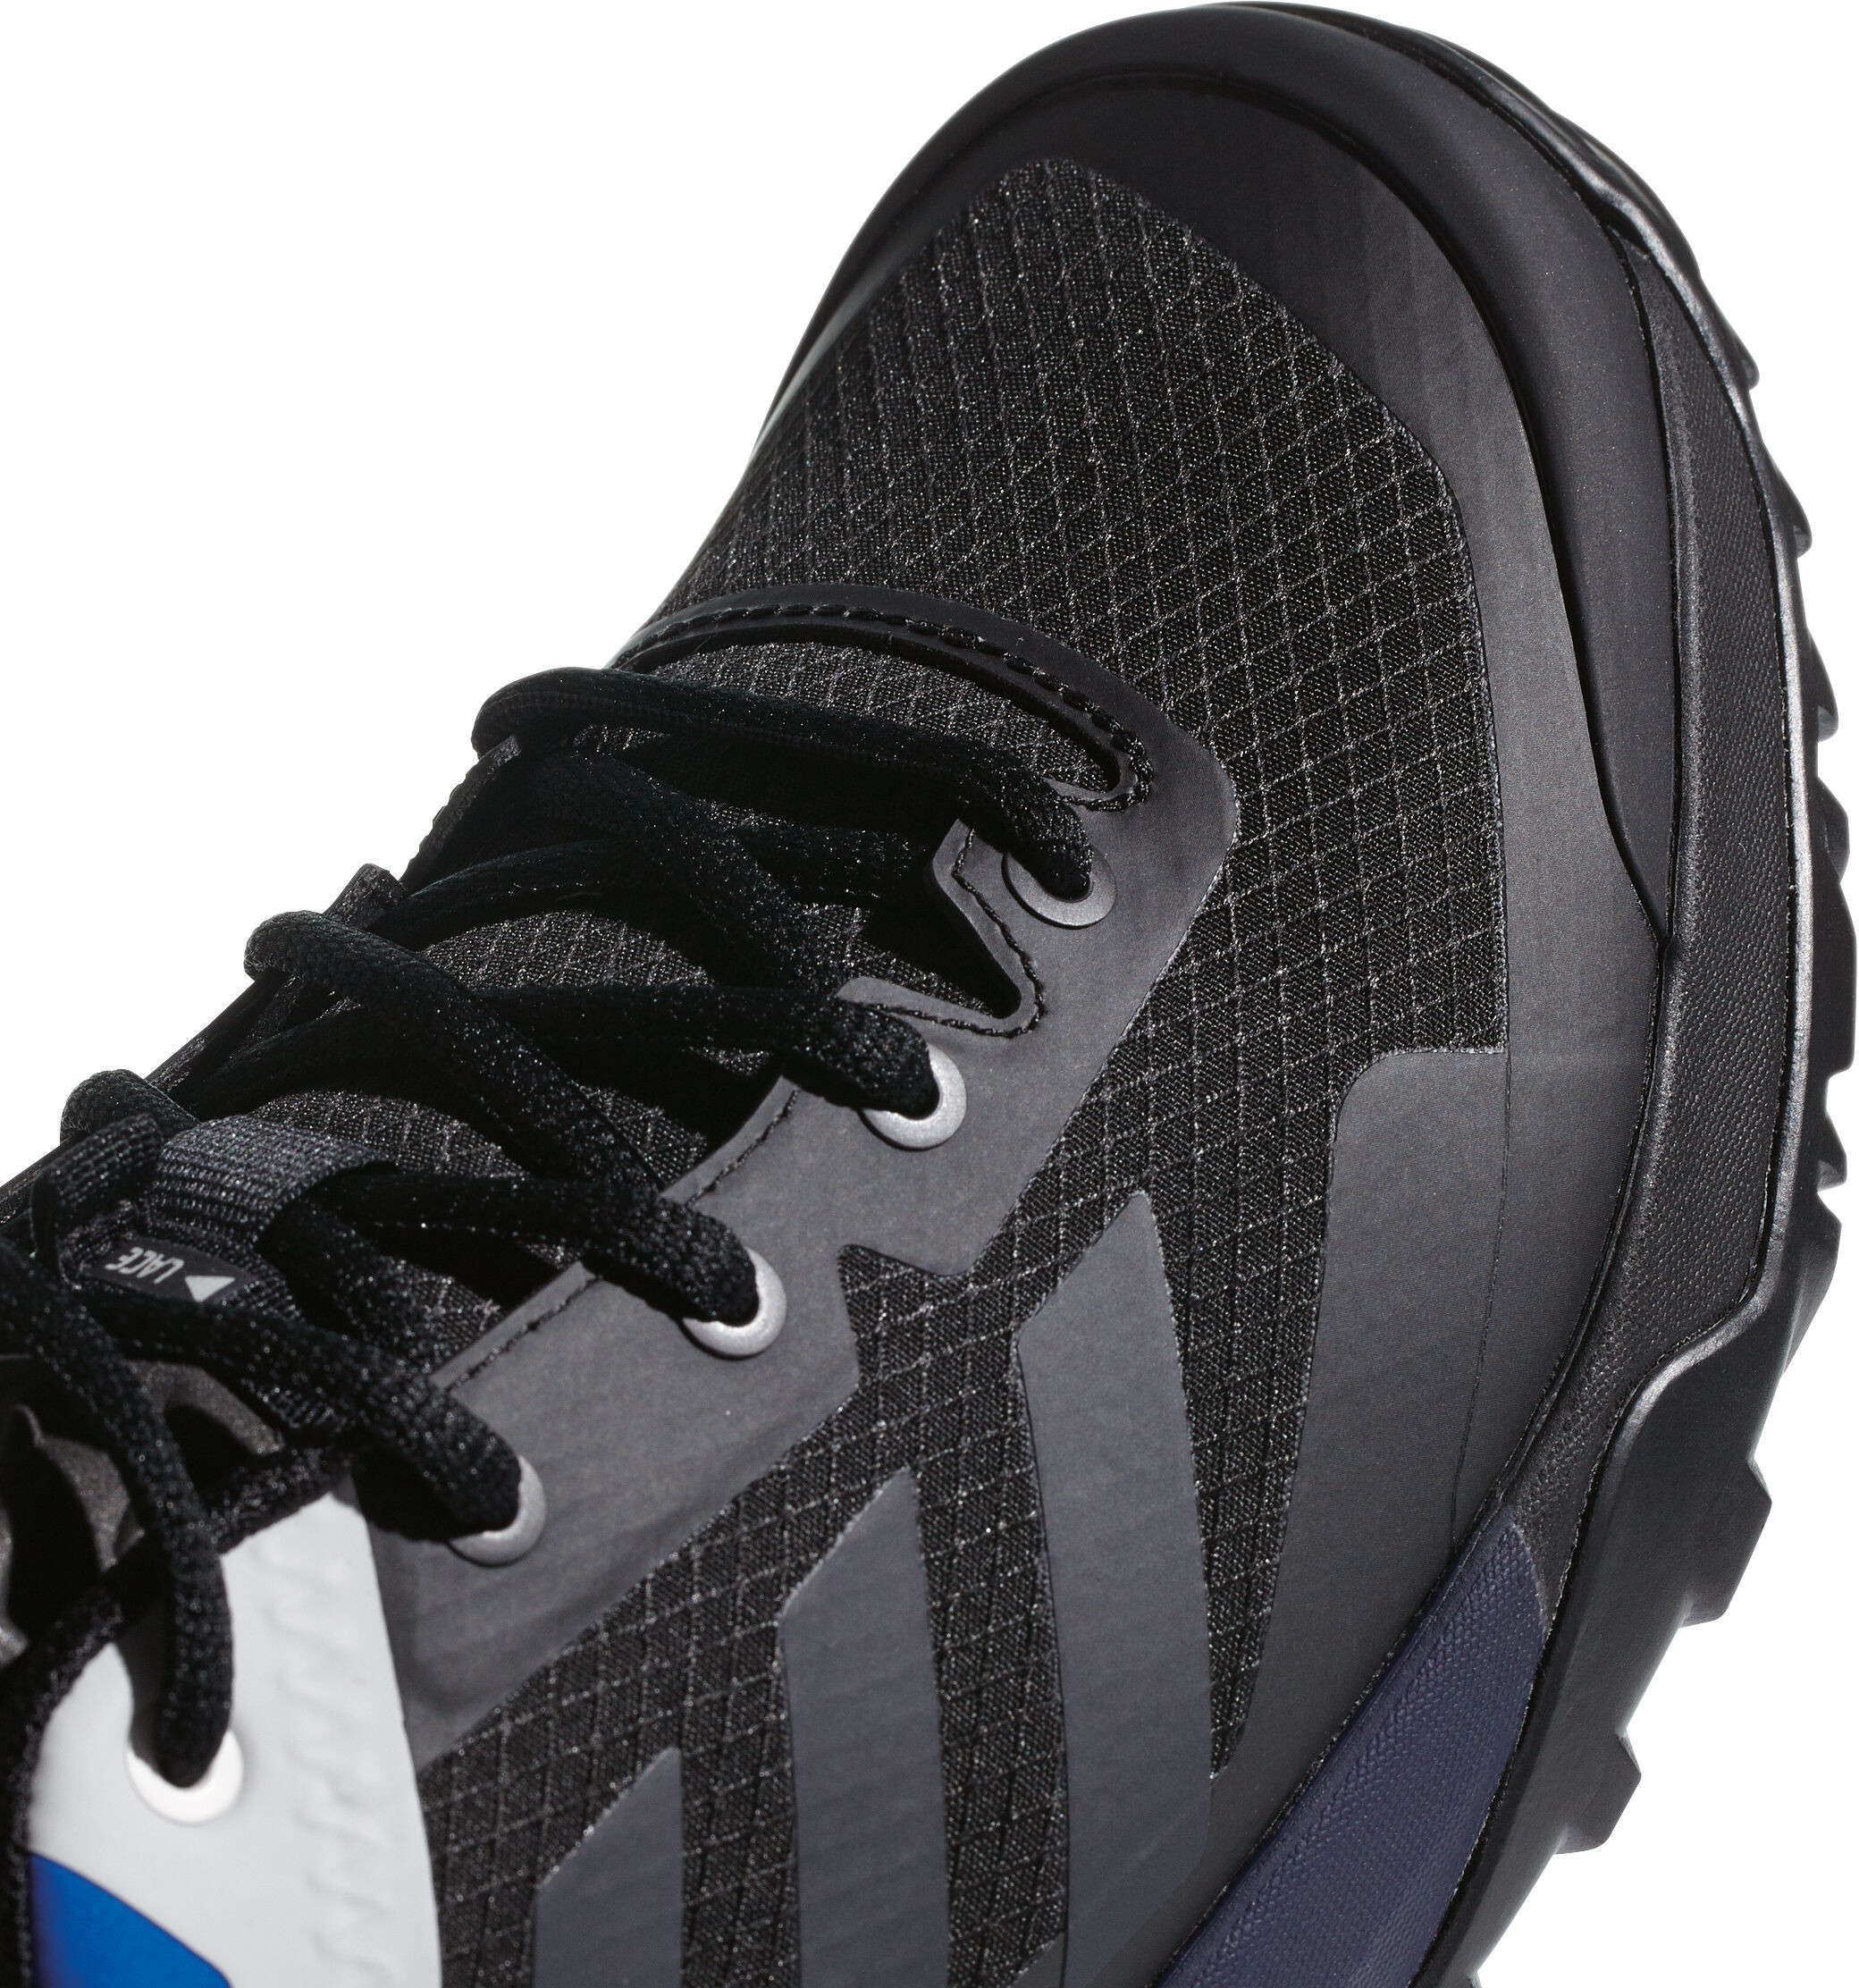 low priced 77815 91b4e adidas TERREX Trail Cross Sl schoenen Heren blauwzwart